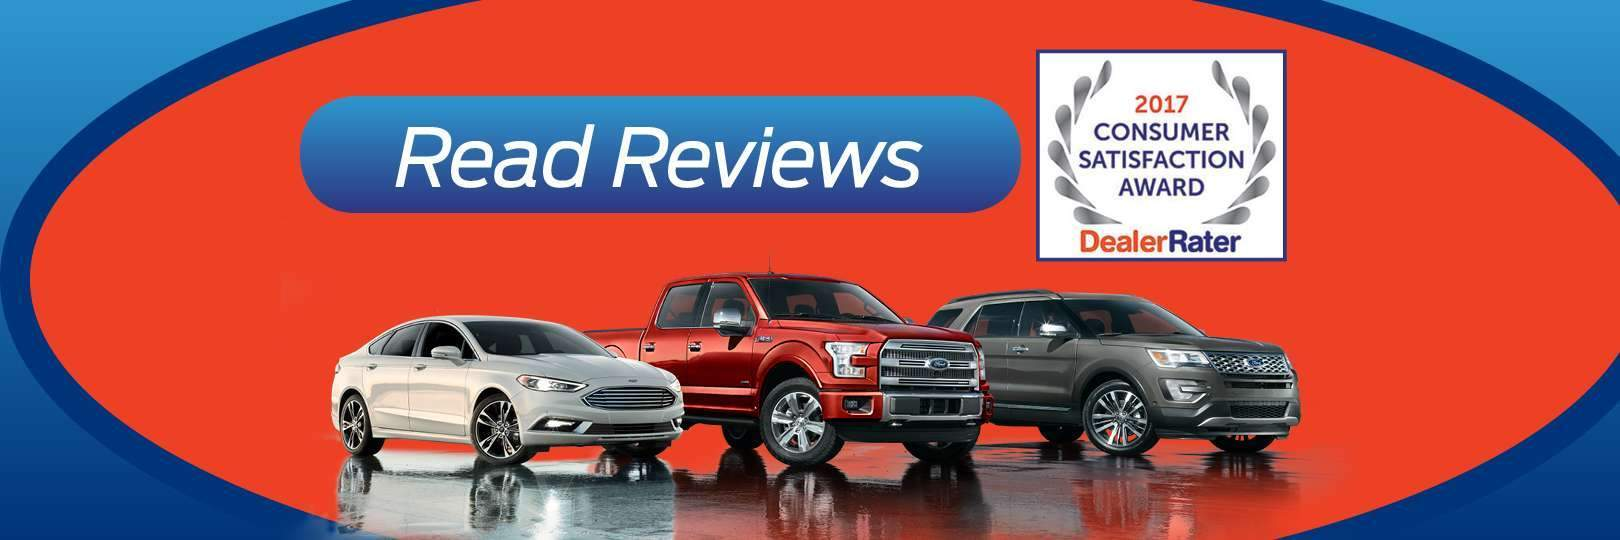 ford lincoln dealership hardeeville sc  cars oc welch ford lincoln